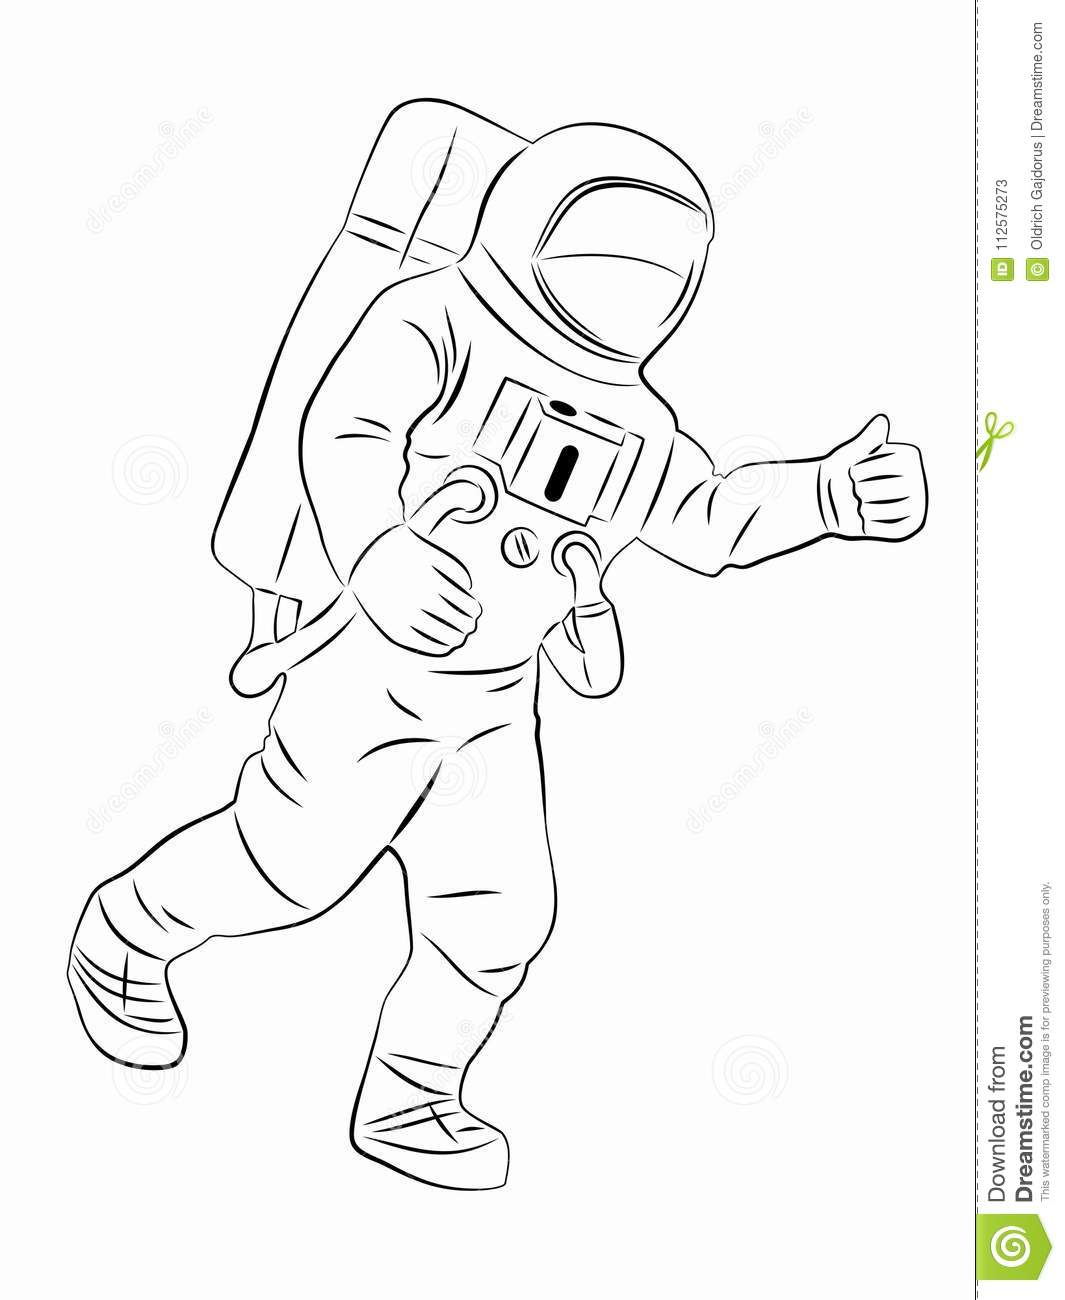 Silhouette Of Astronaut, Vector Drawing Stock Vector